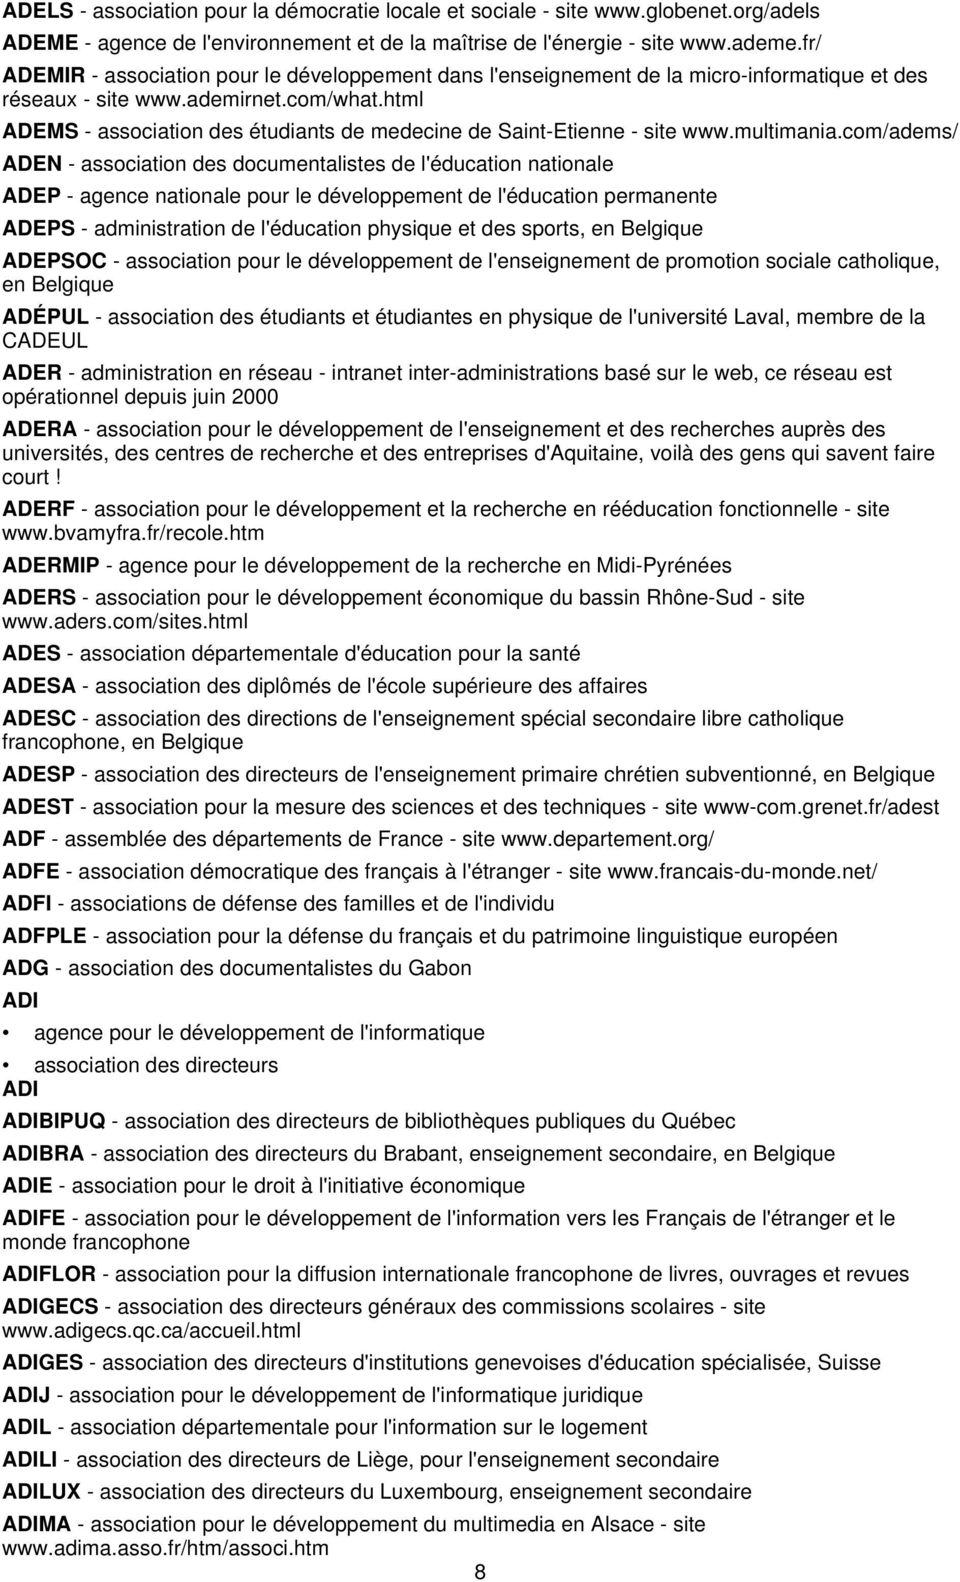 html ADEMS - association des étudiants de medecine de Saint-Etienne - site www.multimania.